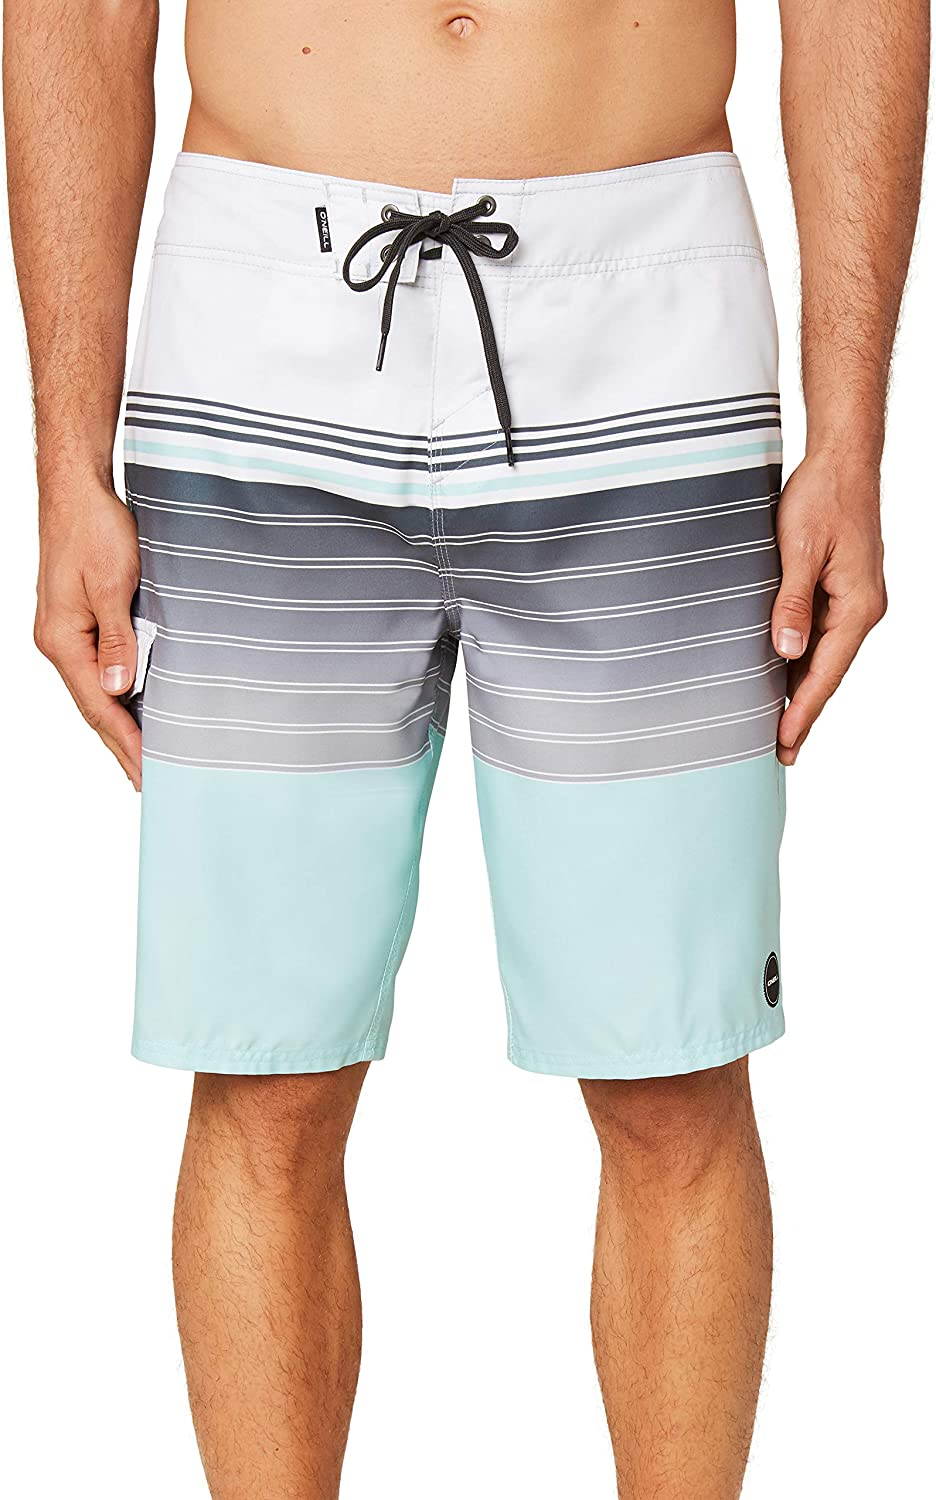 21 Inch Outseam Long-Length Swimsuit ONEILL Mens Water Resistant Ultrasuede Classic Swim Boardshort